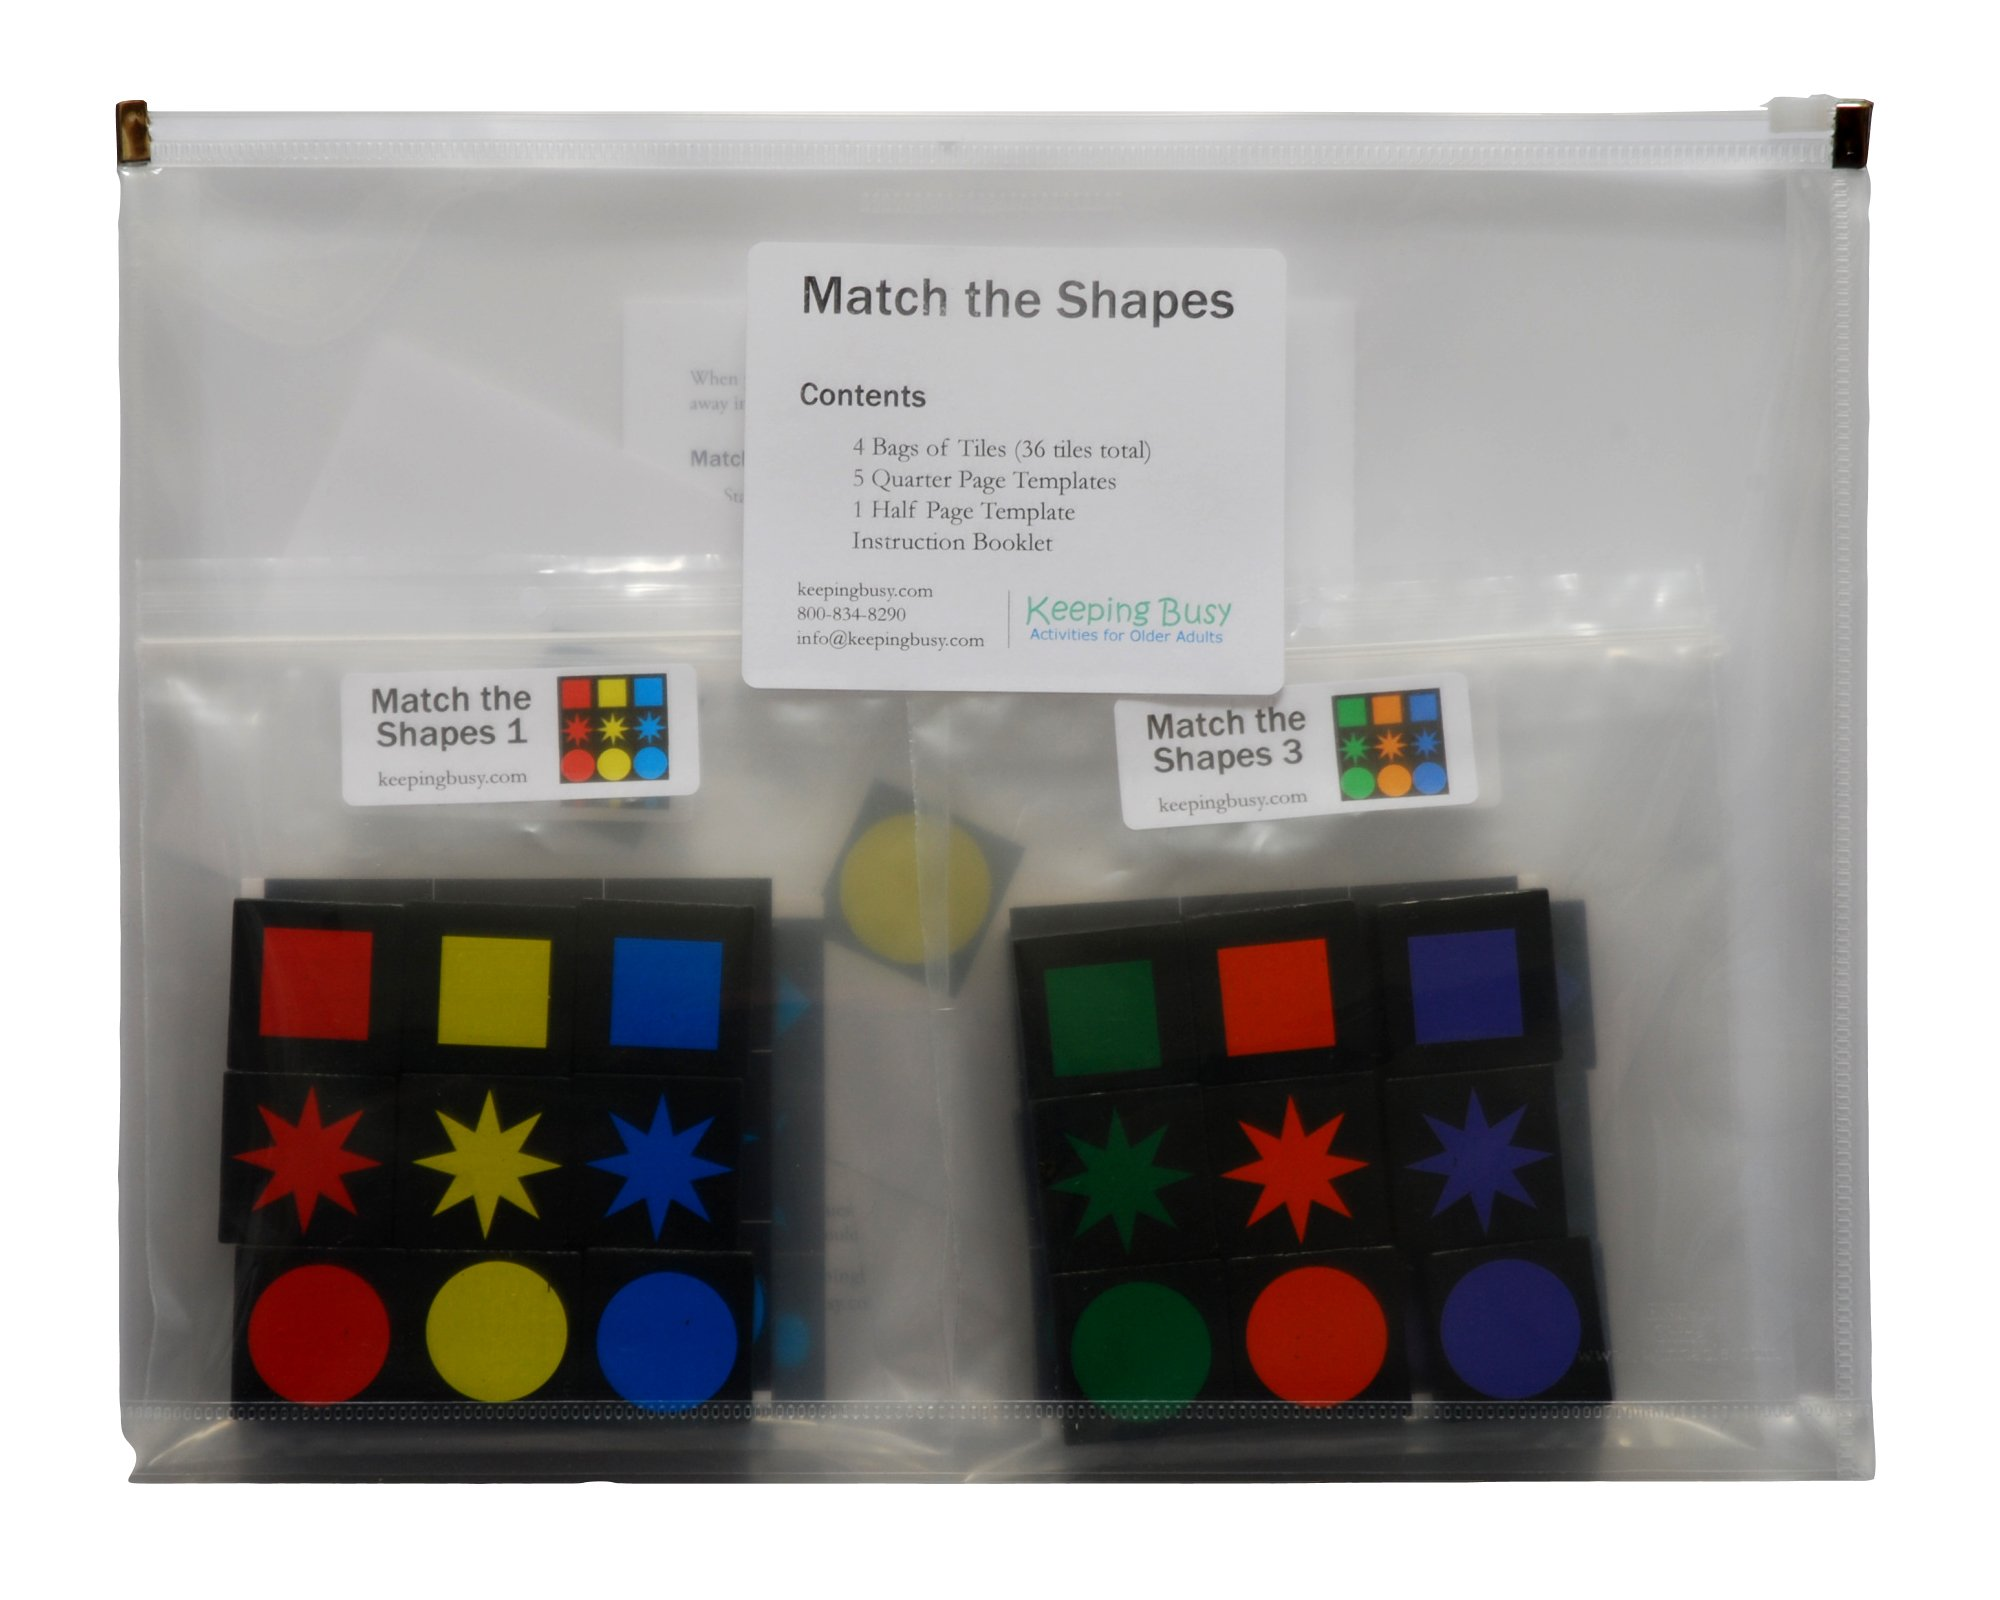 Keeping Busy Match The Shapes Engaging Activity for Dementia and Alzheimer's by Keeping Busy